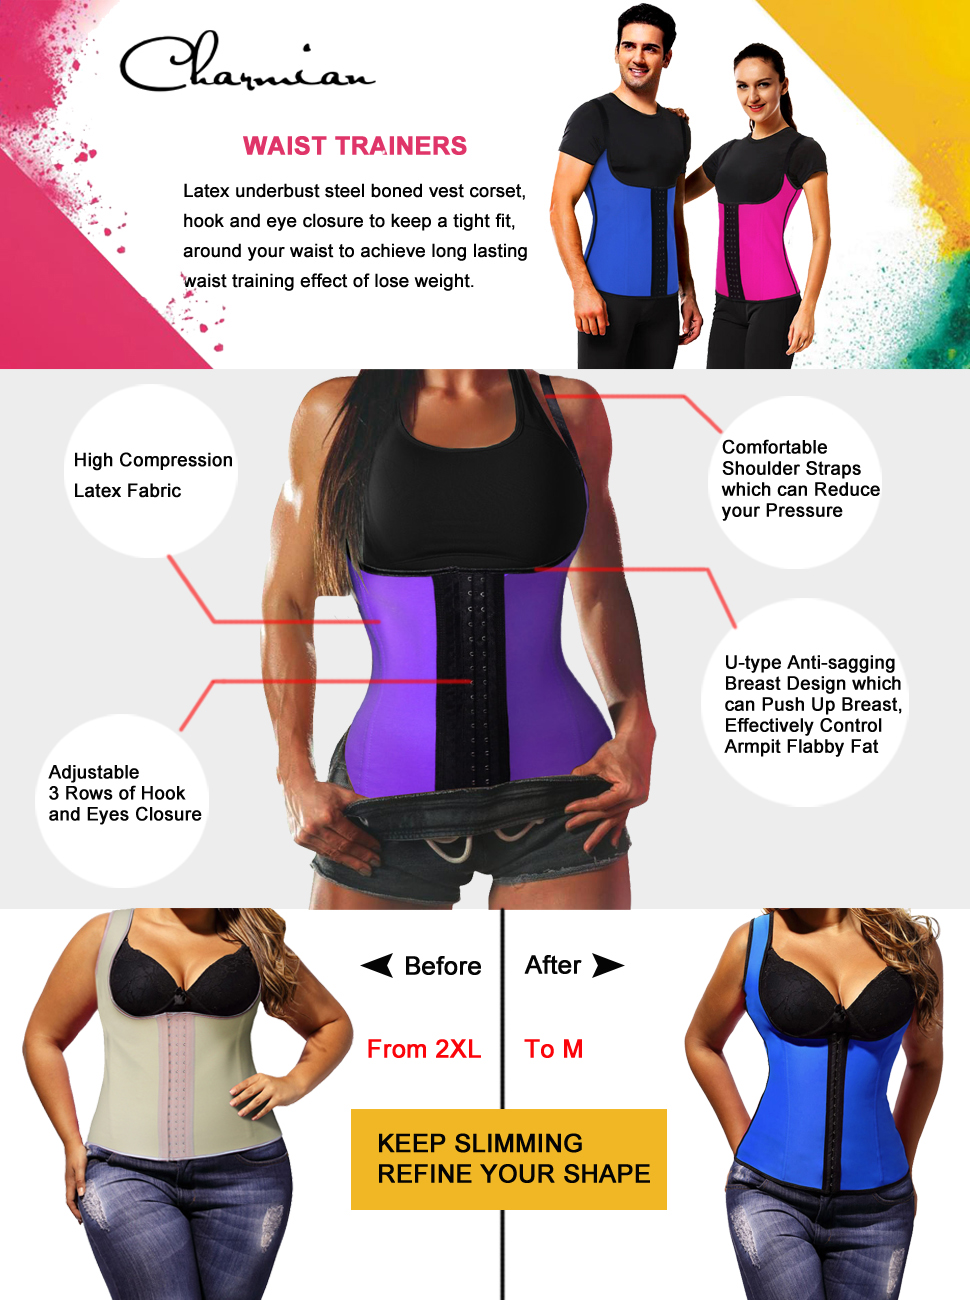 how to choose waist trainer size